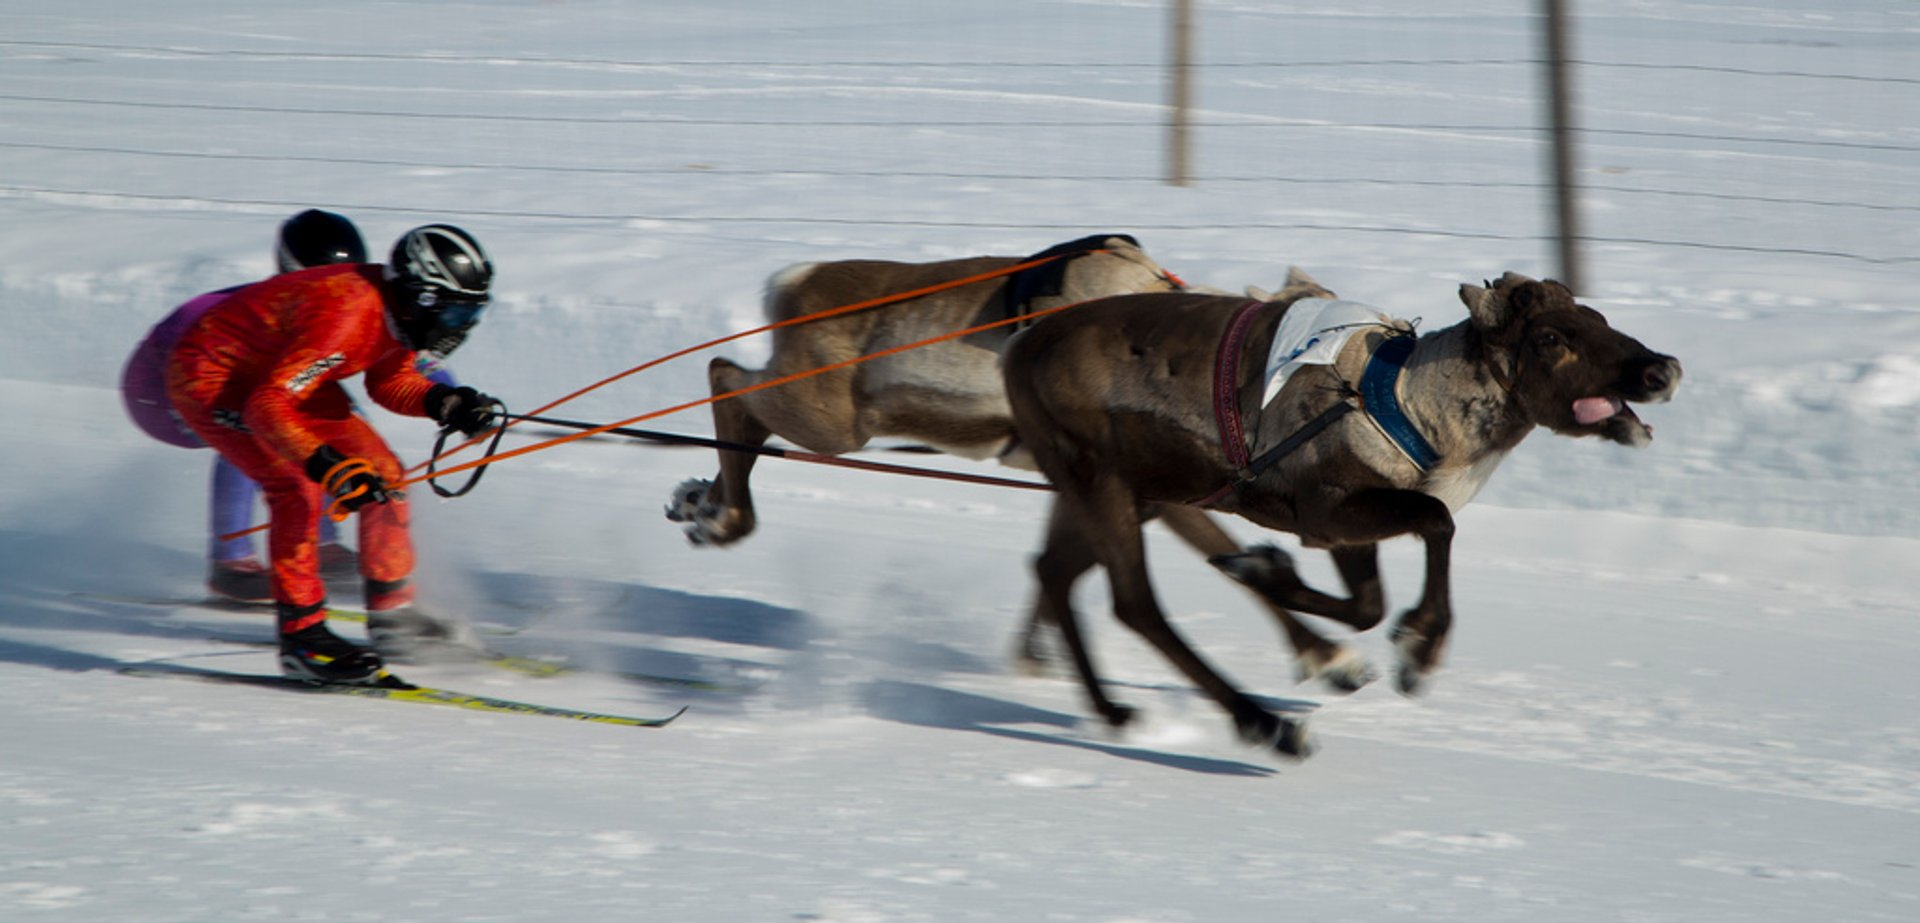 Best time to see World Reindeer Racing Championships 2019